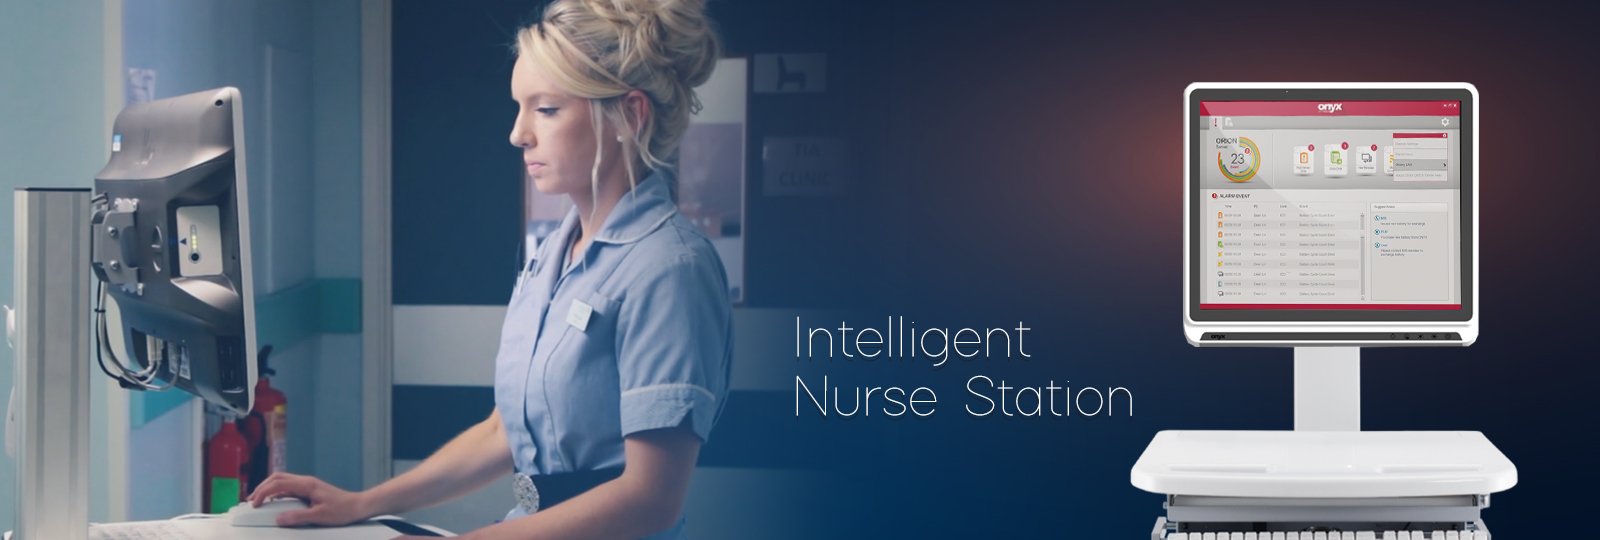 Intelligent Nurse Station